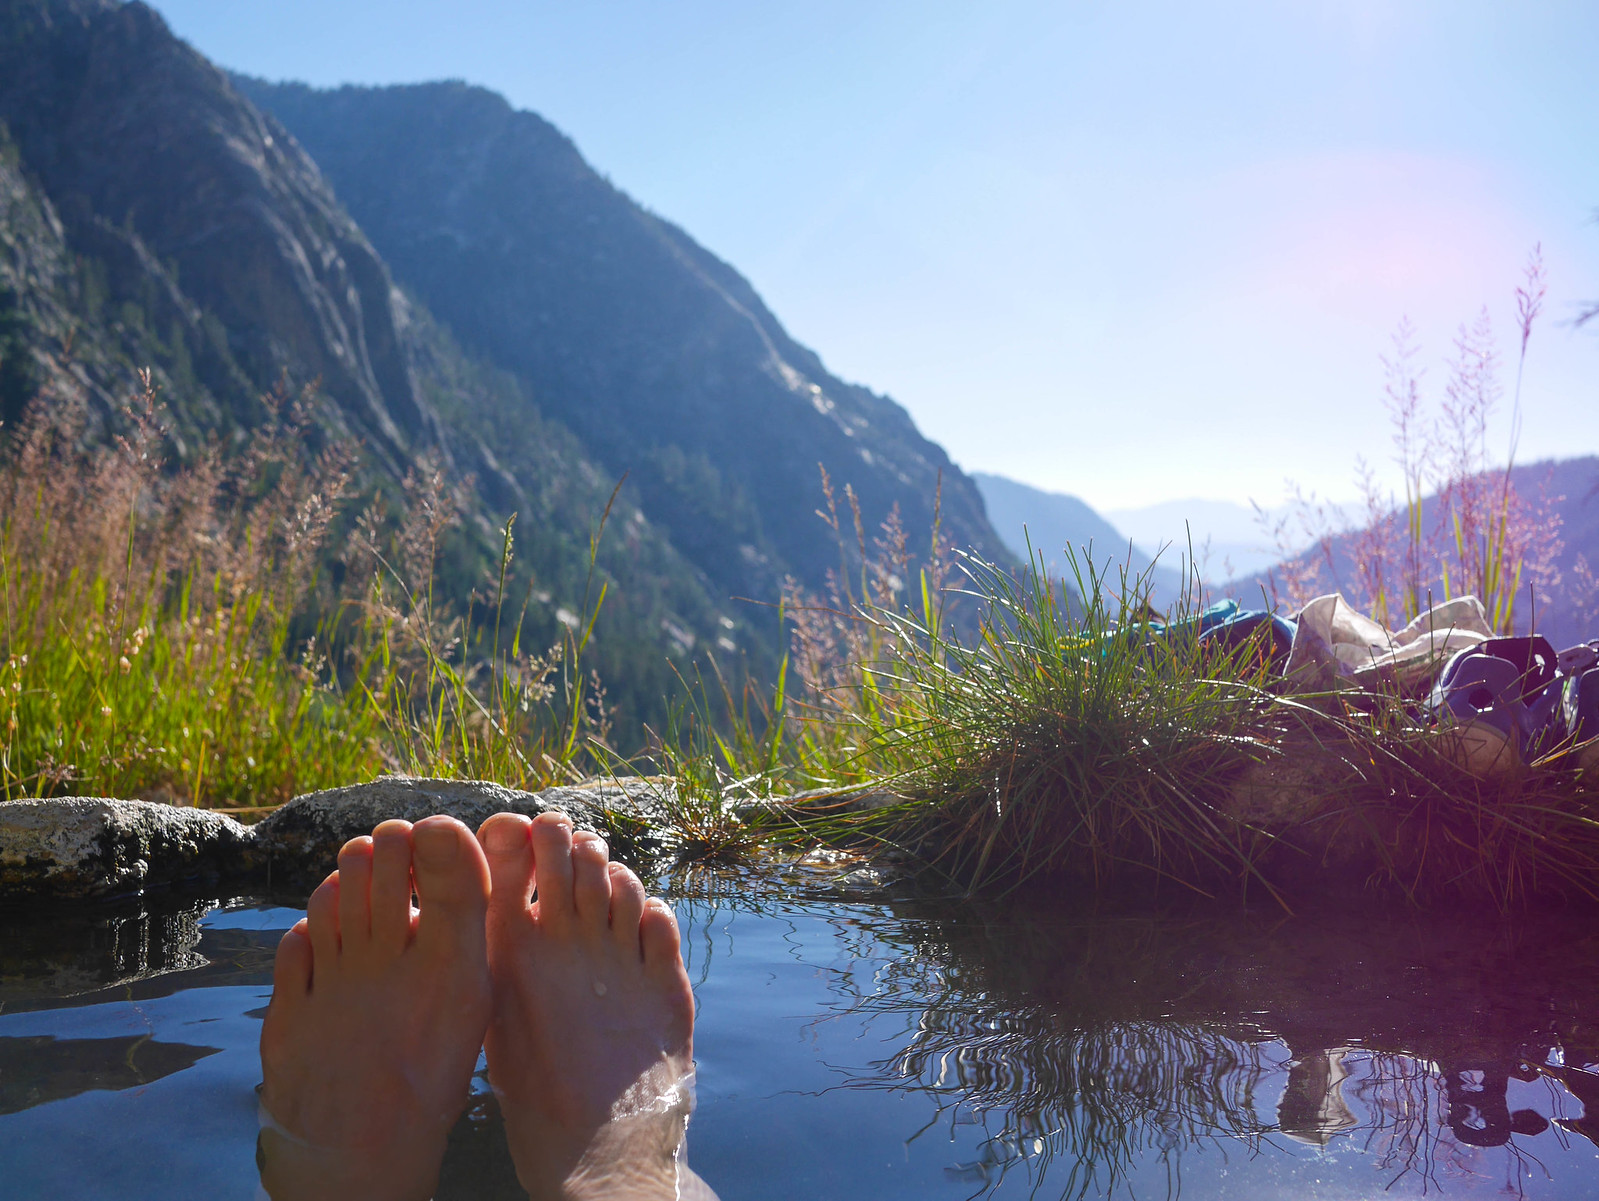 Afternoon soak at Iva Bell Hot Springs